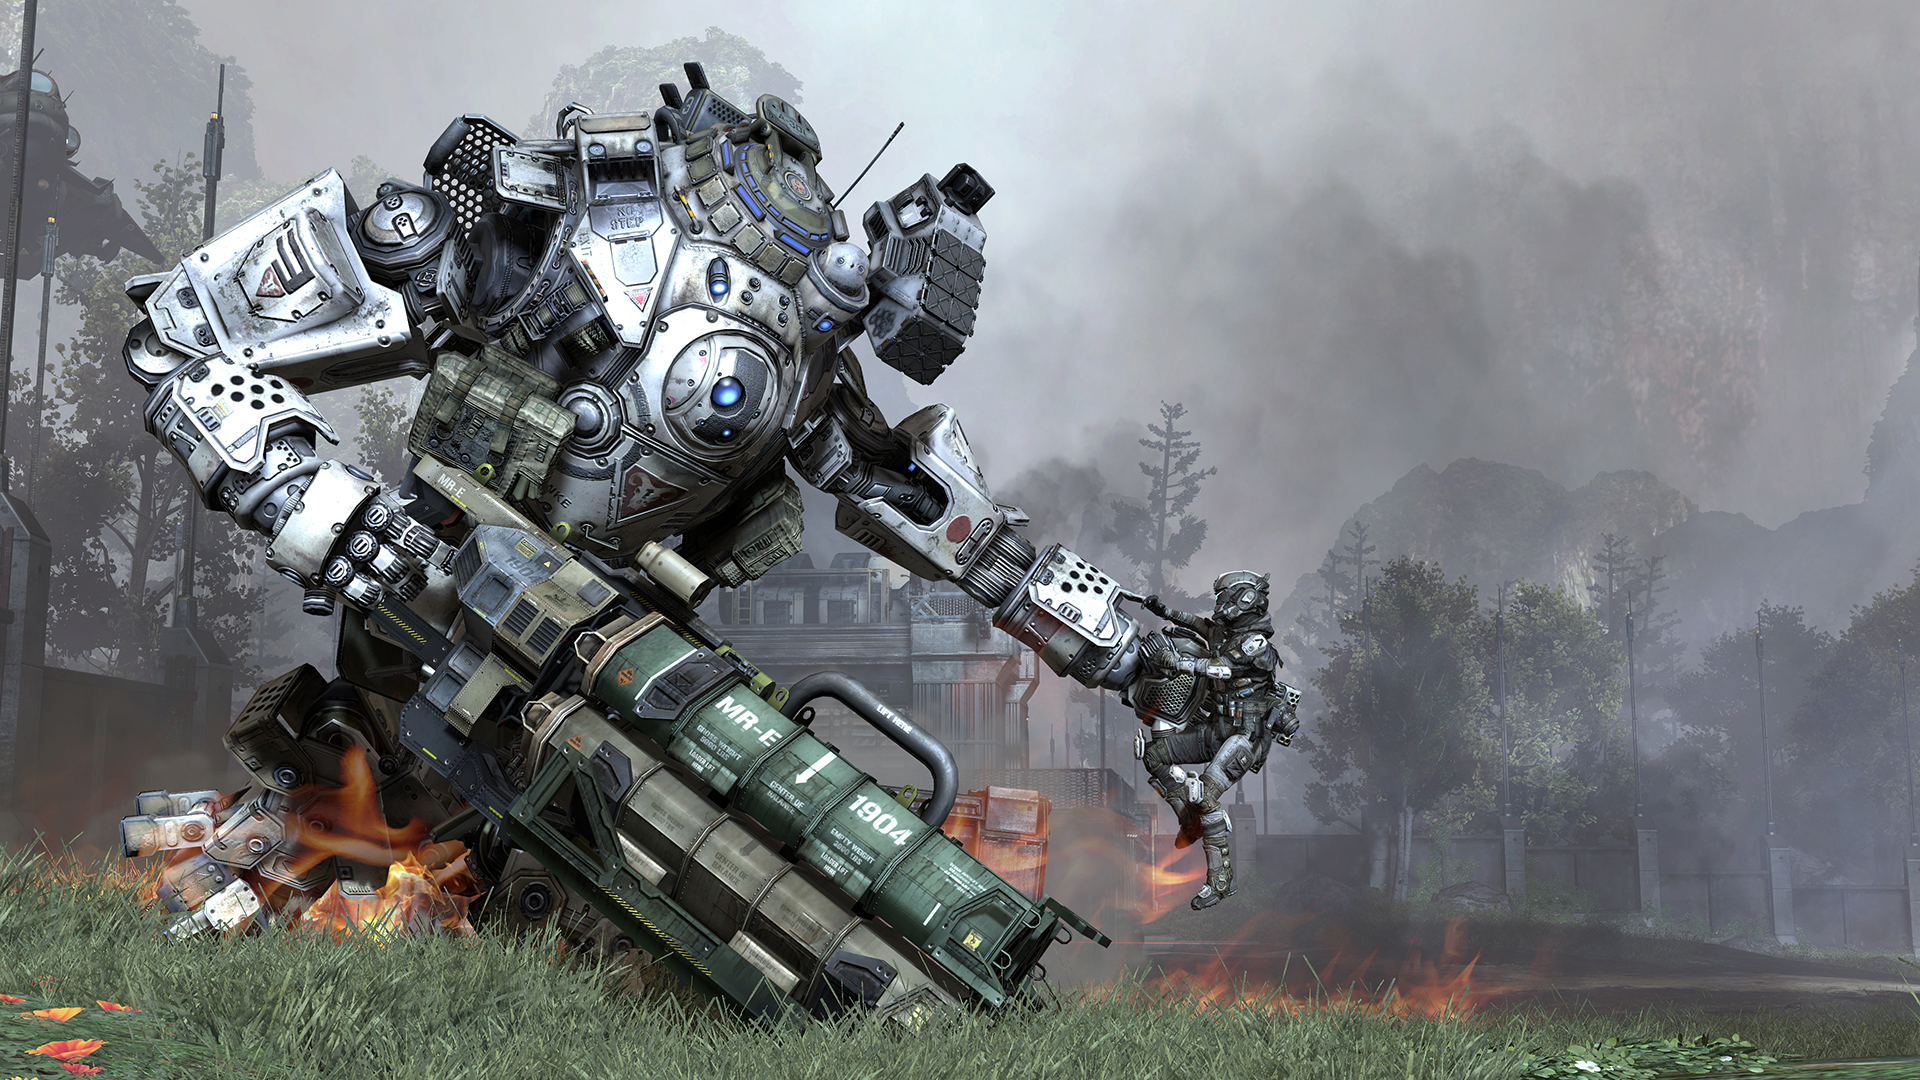 file_8070_Titanfall-Screen-6_1080p